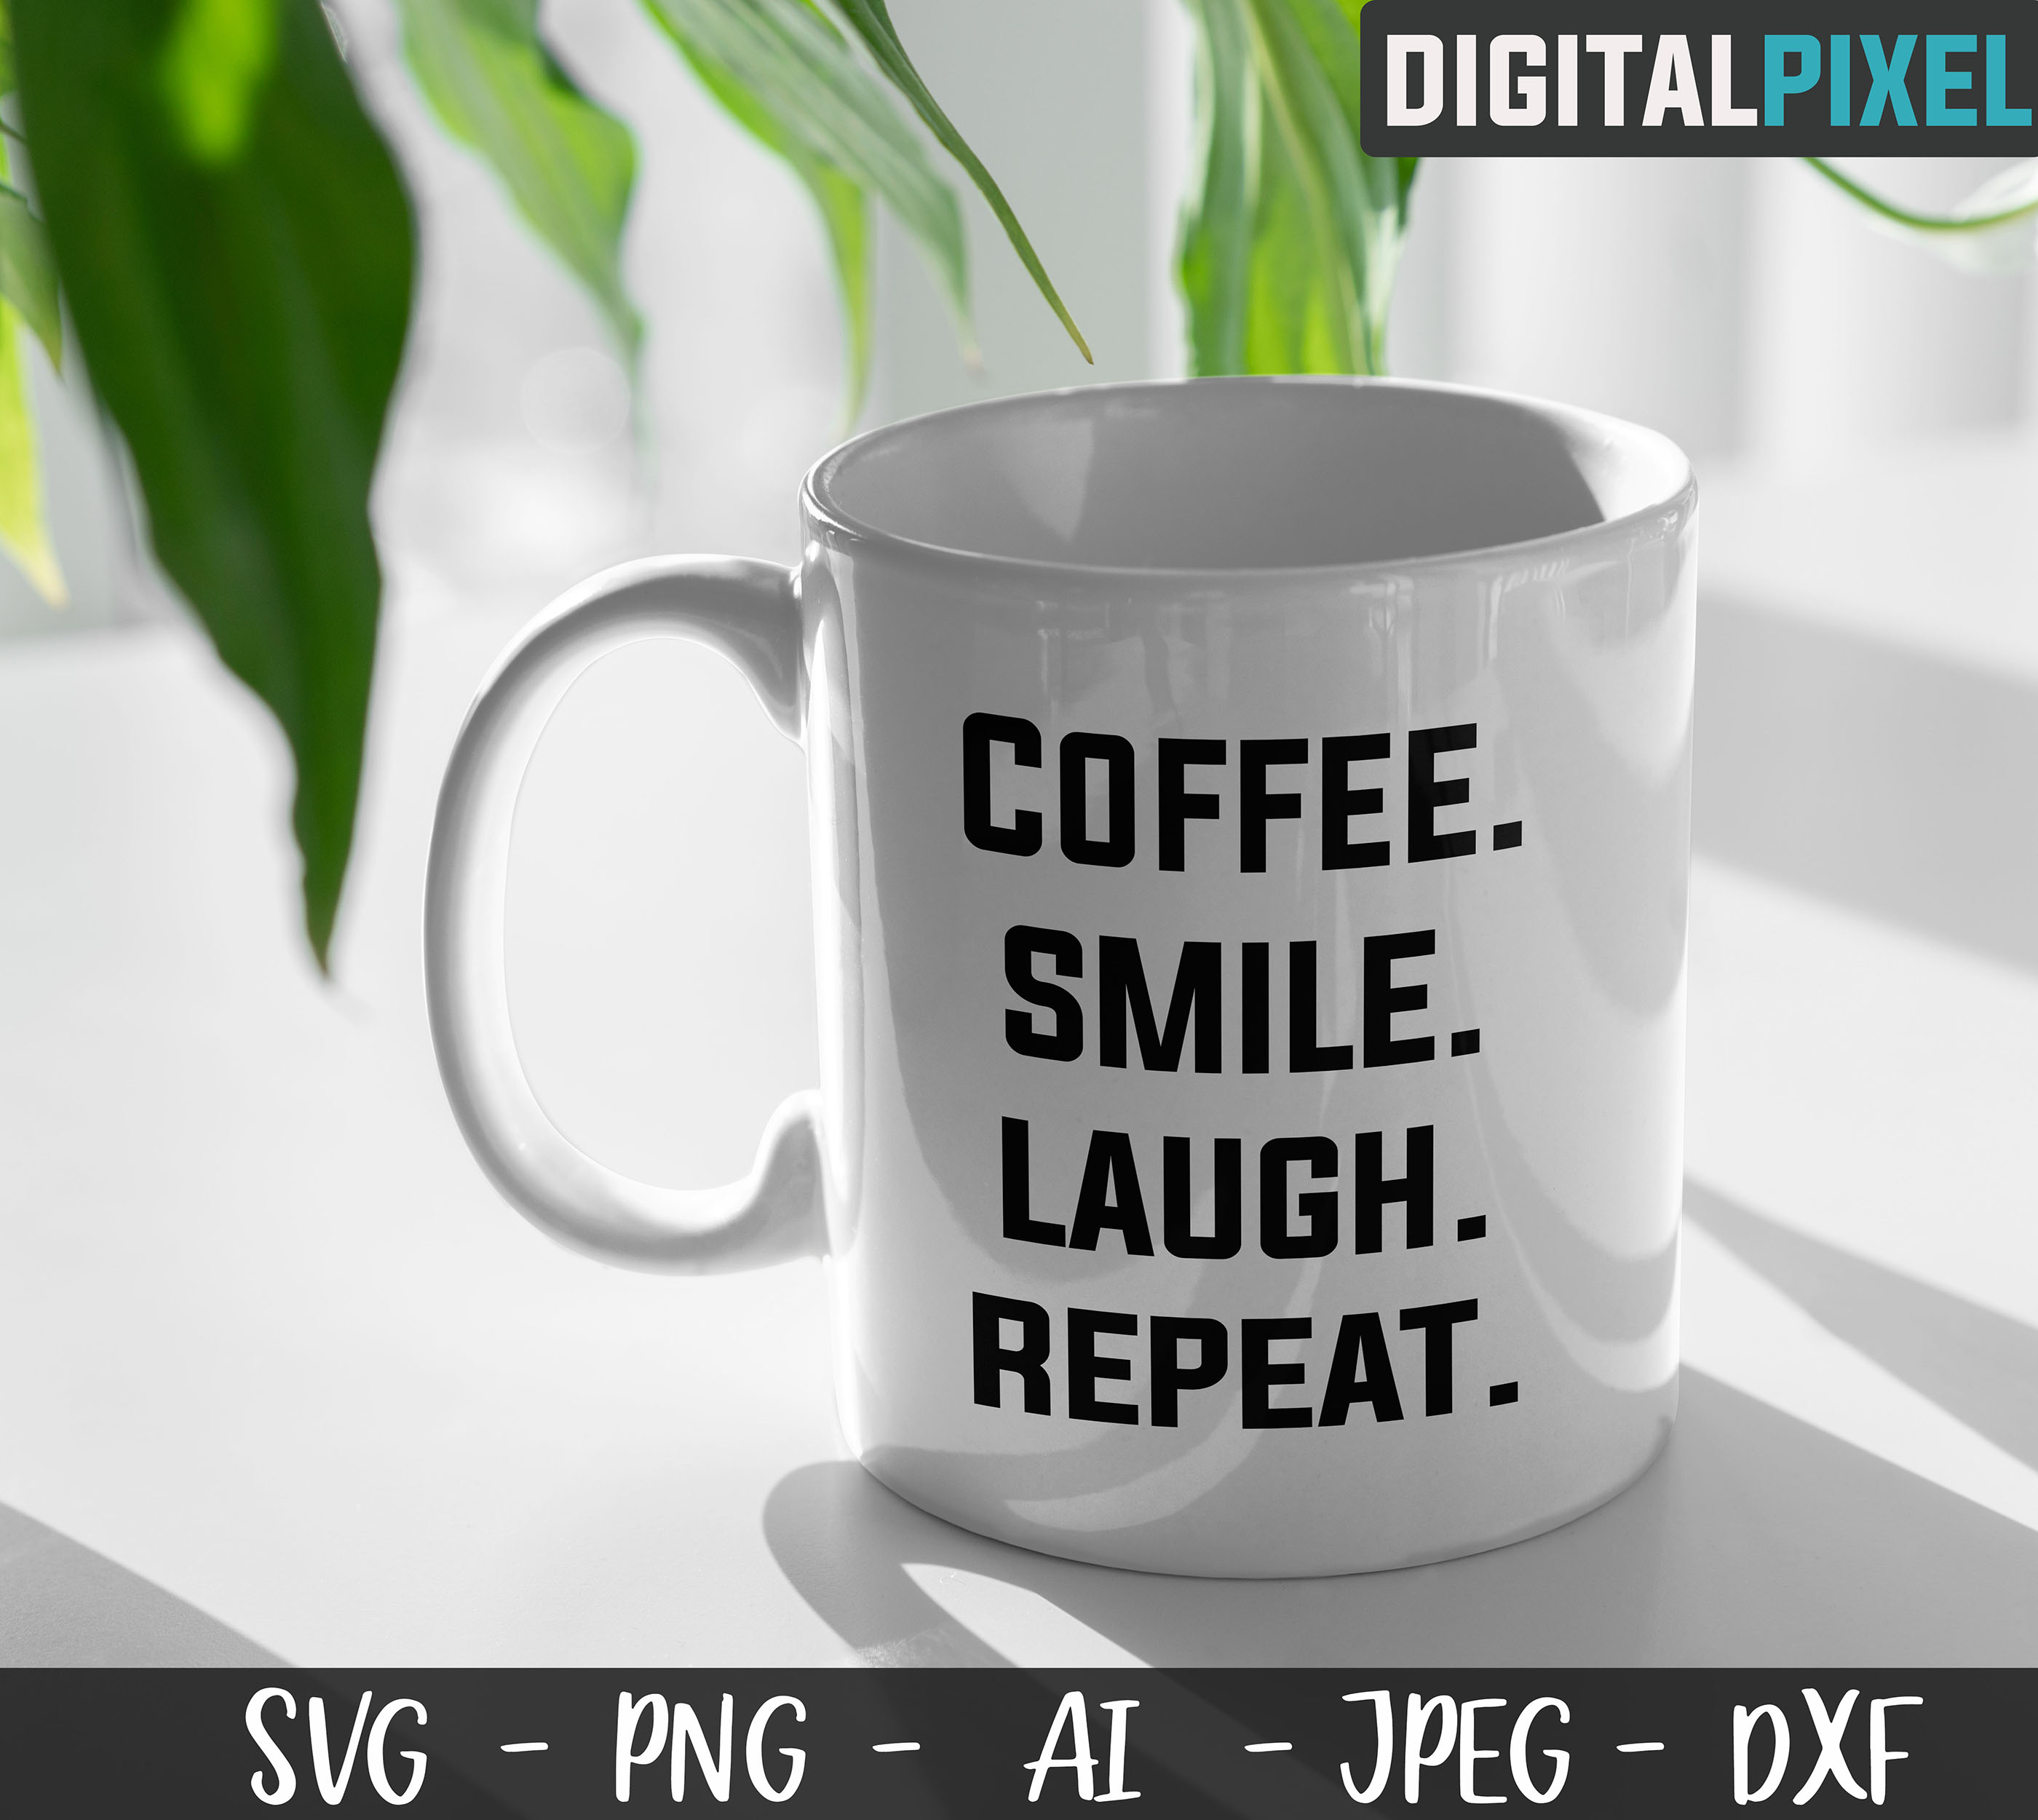 Coffee Bundle SVG PNG JPEG DXF Circut Cut Coffee Crafters example image 3